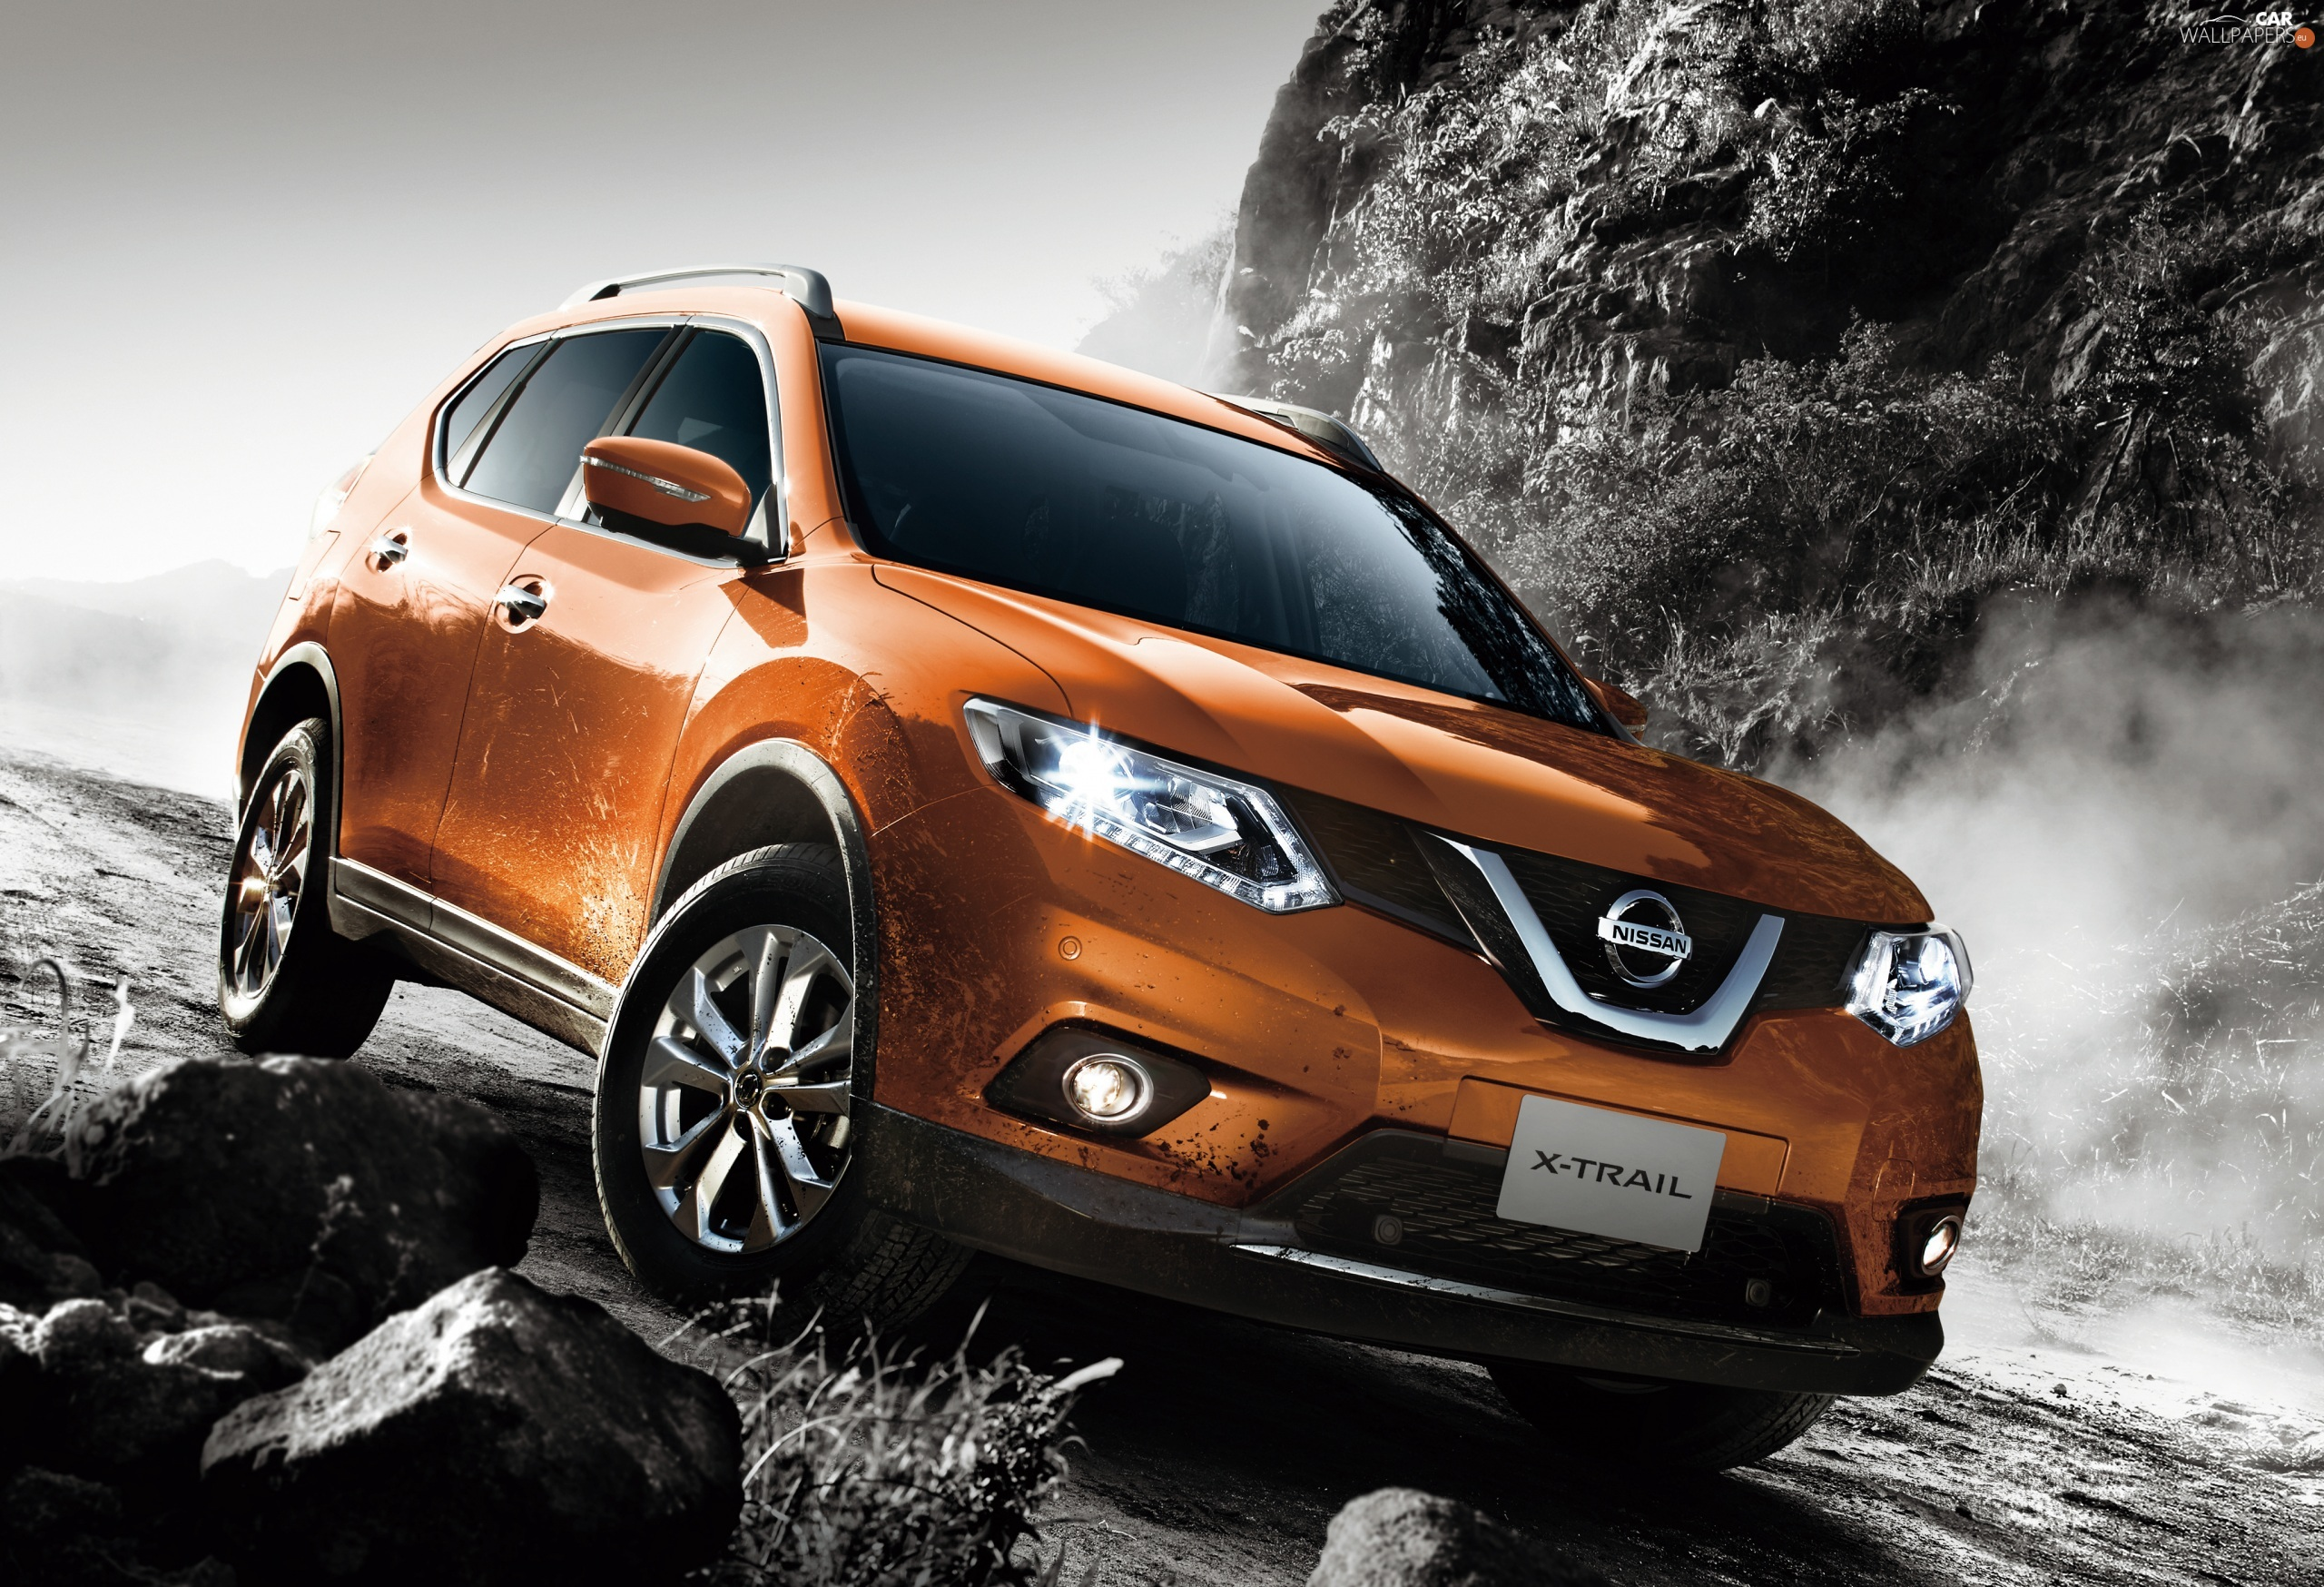 2013, copper, Nissan X-Trail III T32 Crossover